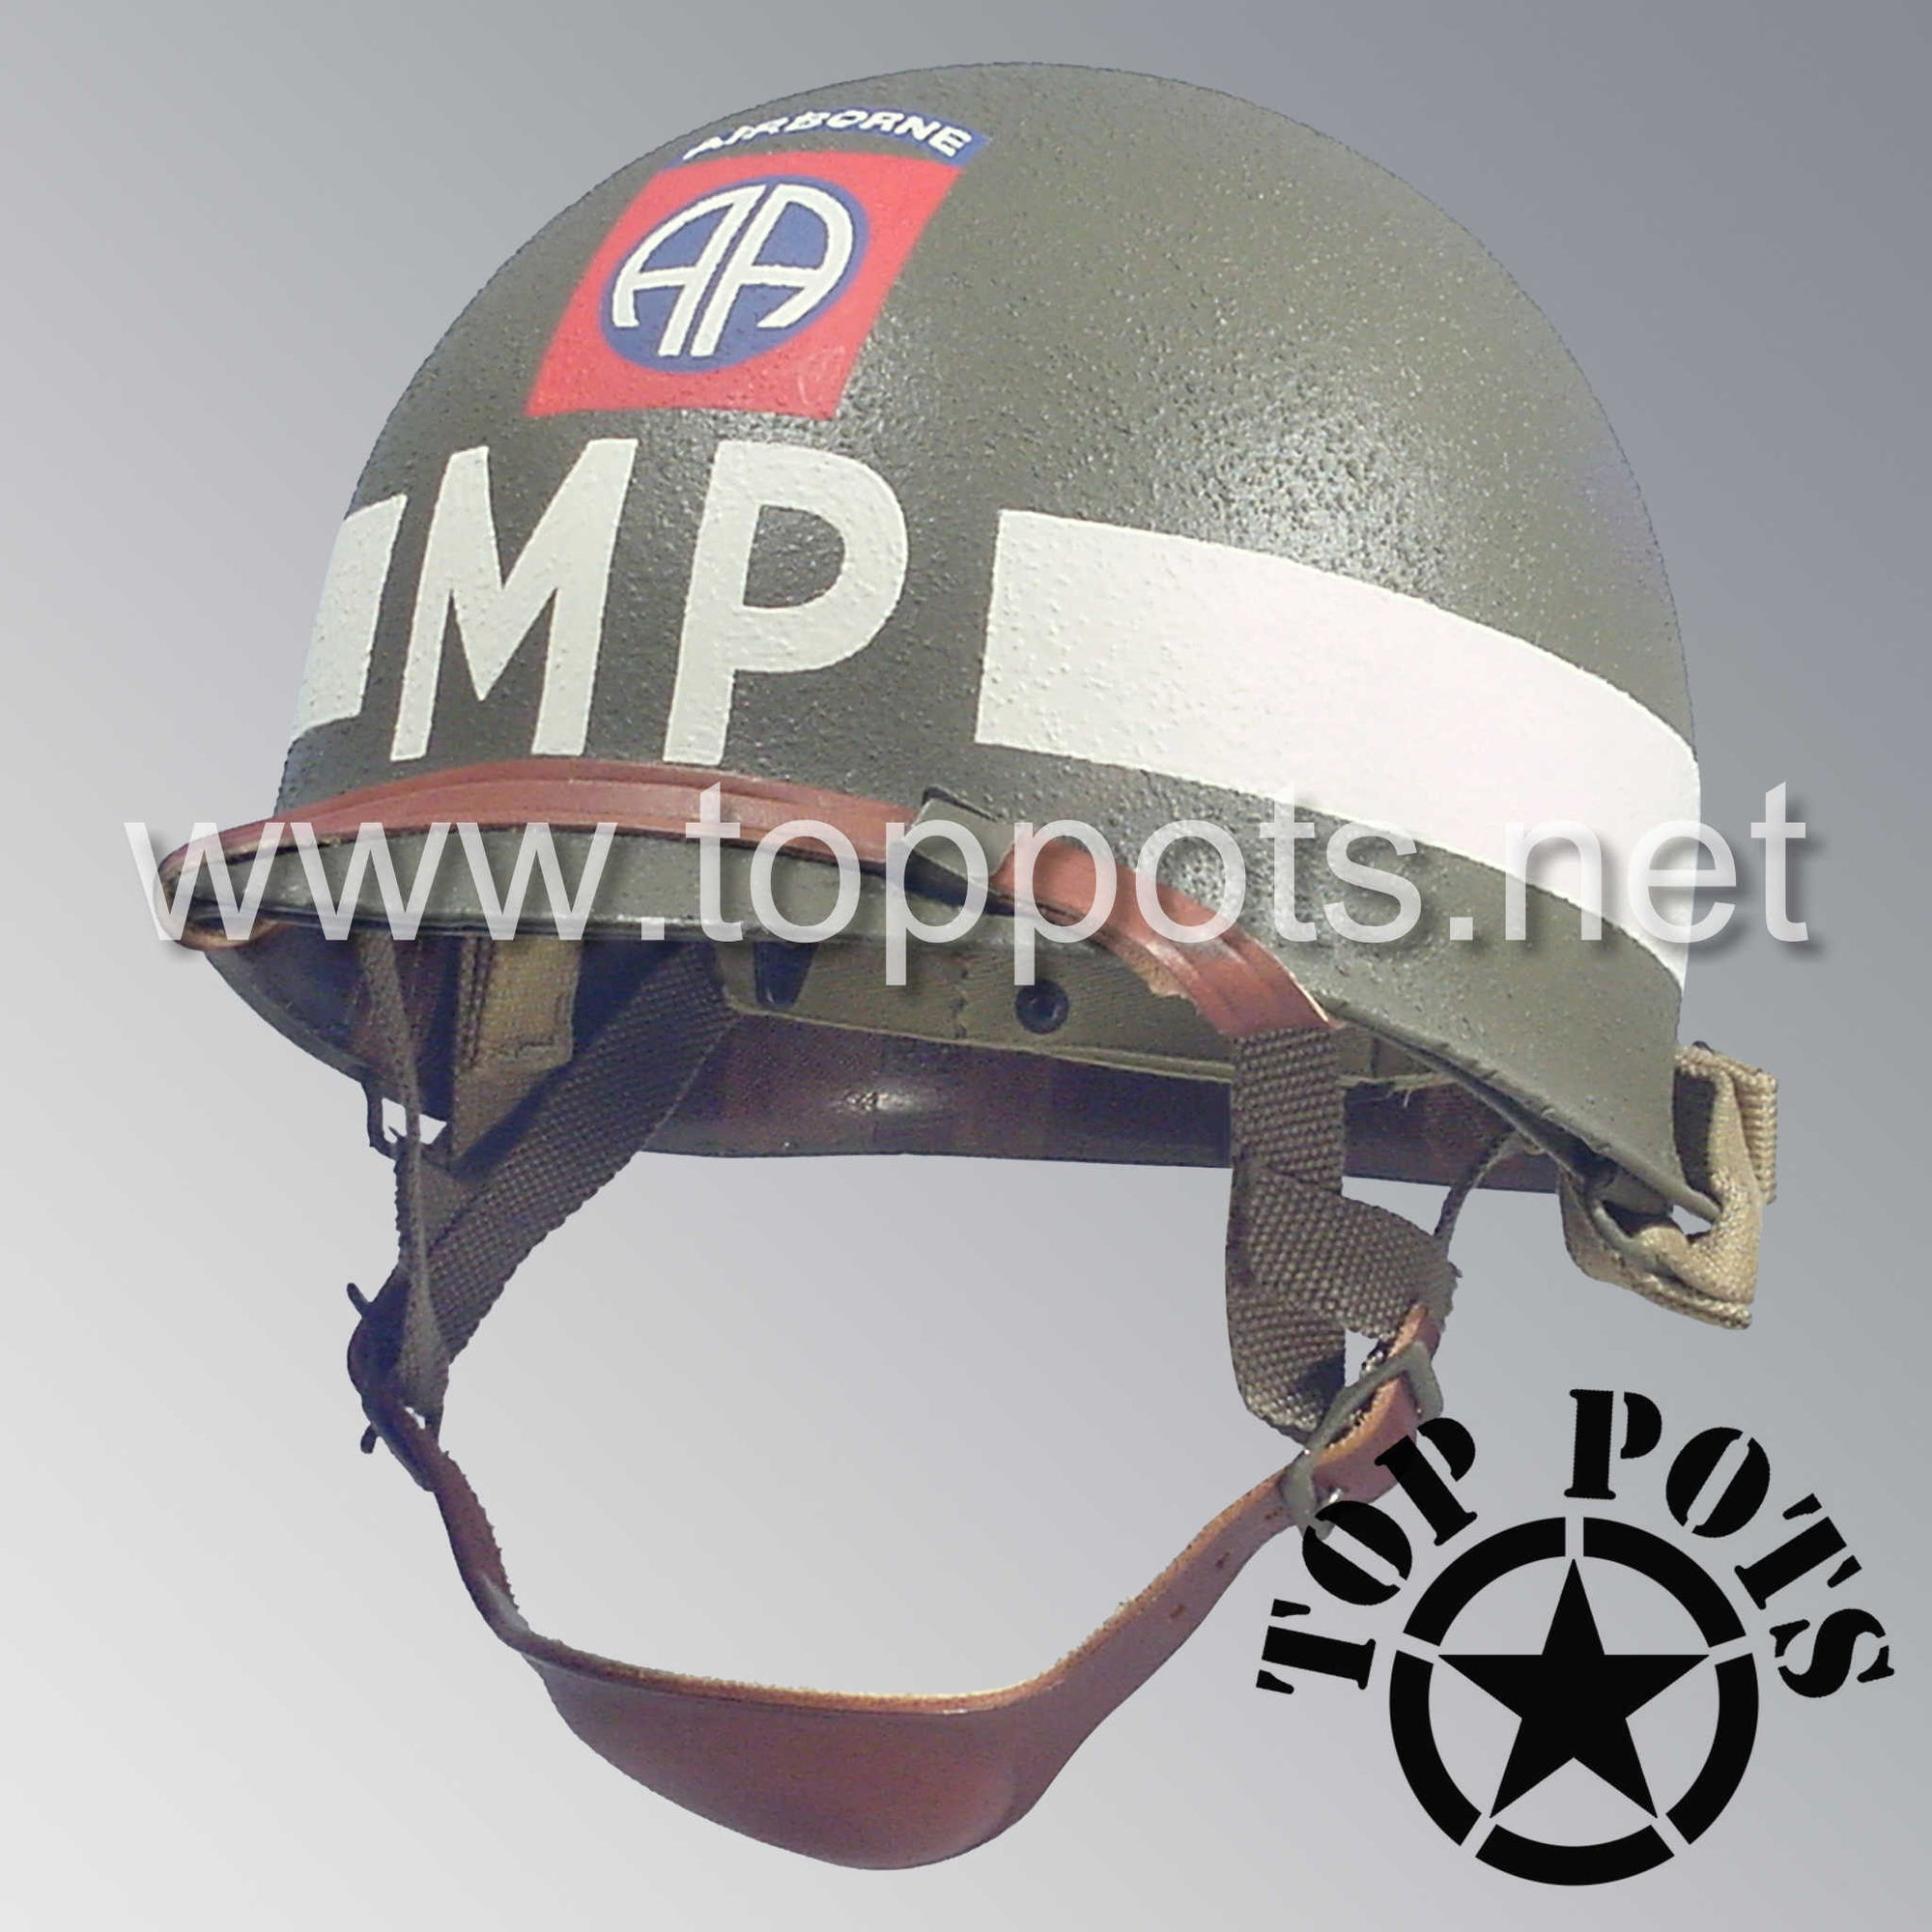 Image 1 of WWII US Army Restored Original M1C Paratrooper Airborne Helmet Swivel Bale Shell and Liner with 82nd Airborne Military Police Battalion MP Emblem